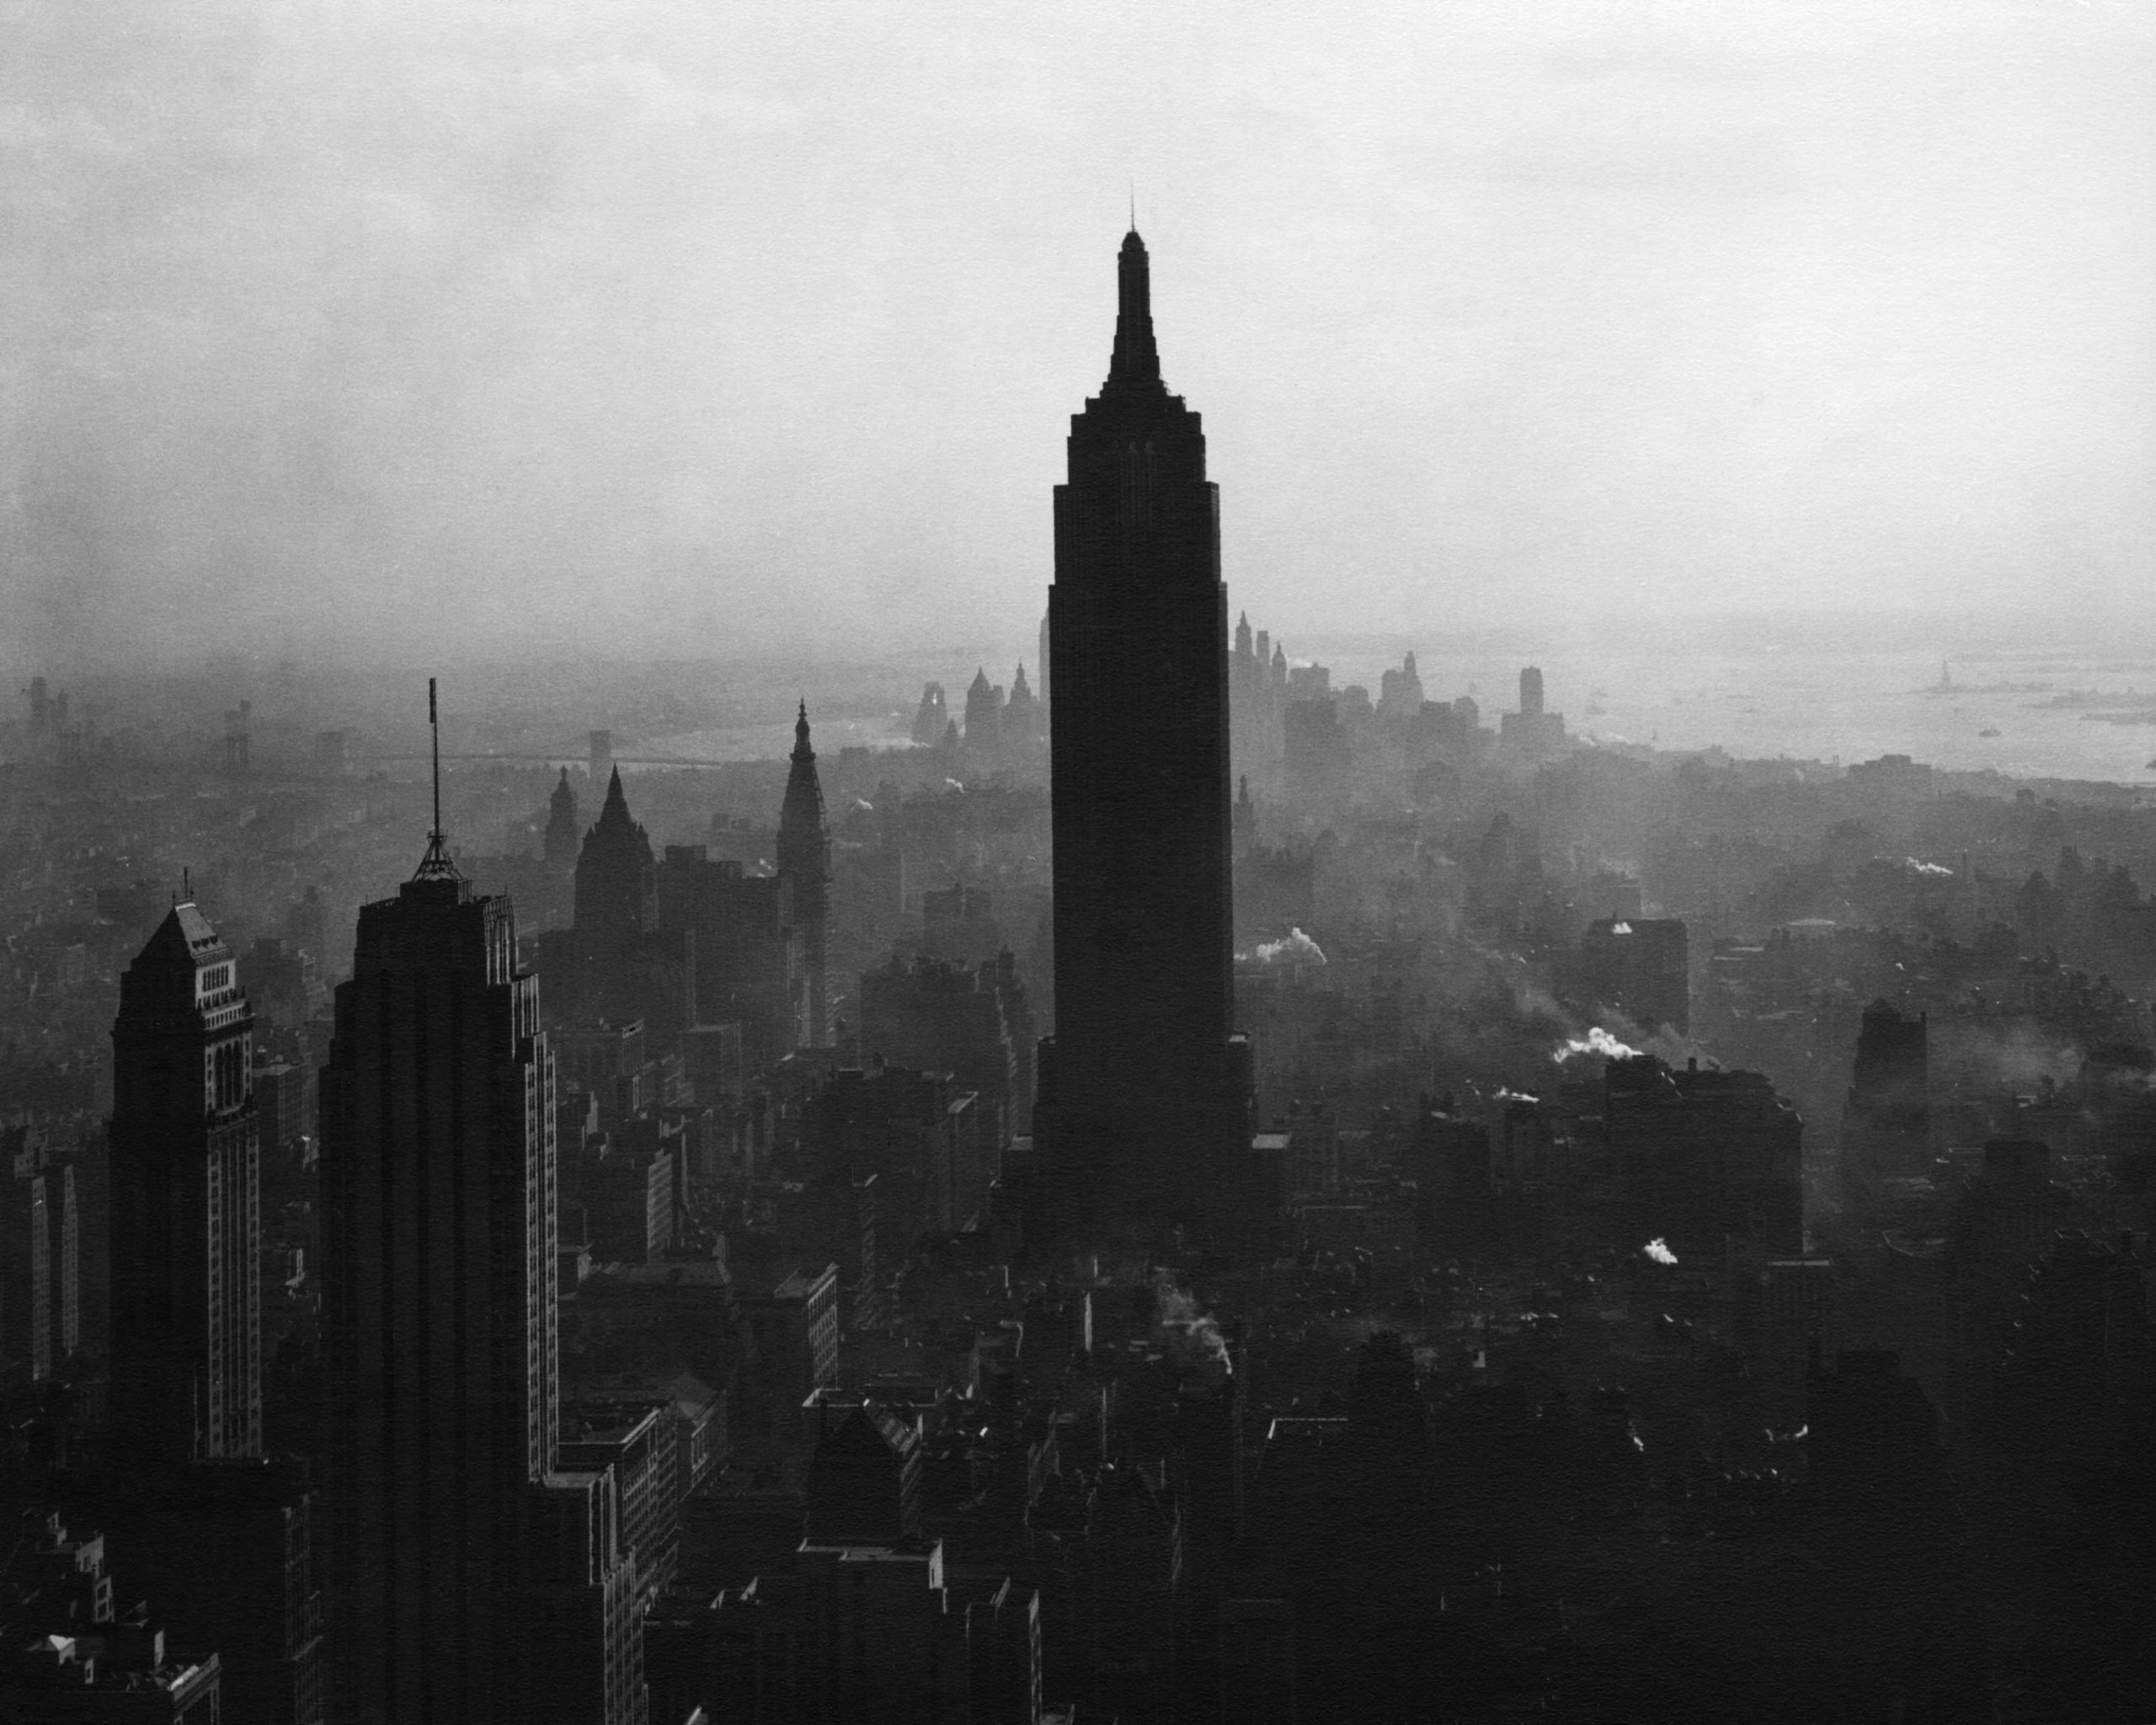 Todd Webb, View South from the top of the RCA Building showing the Empire State Building, 1947